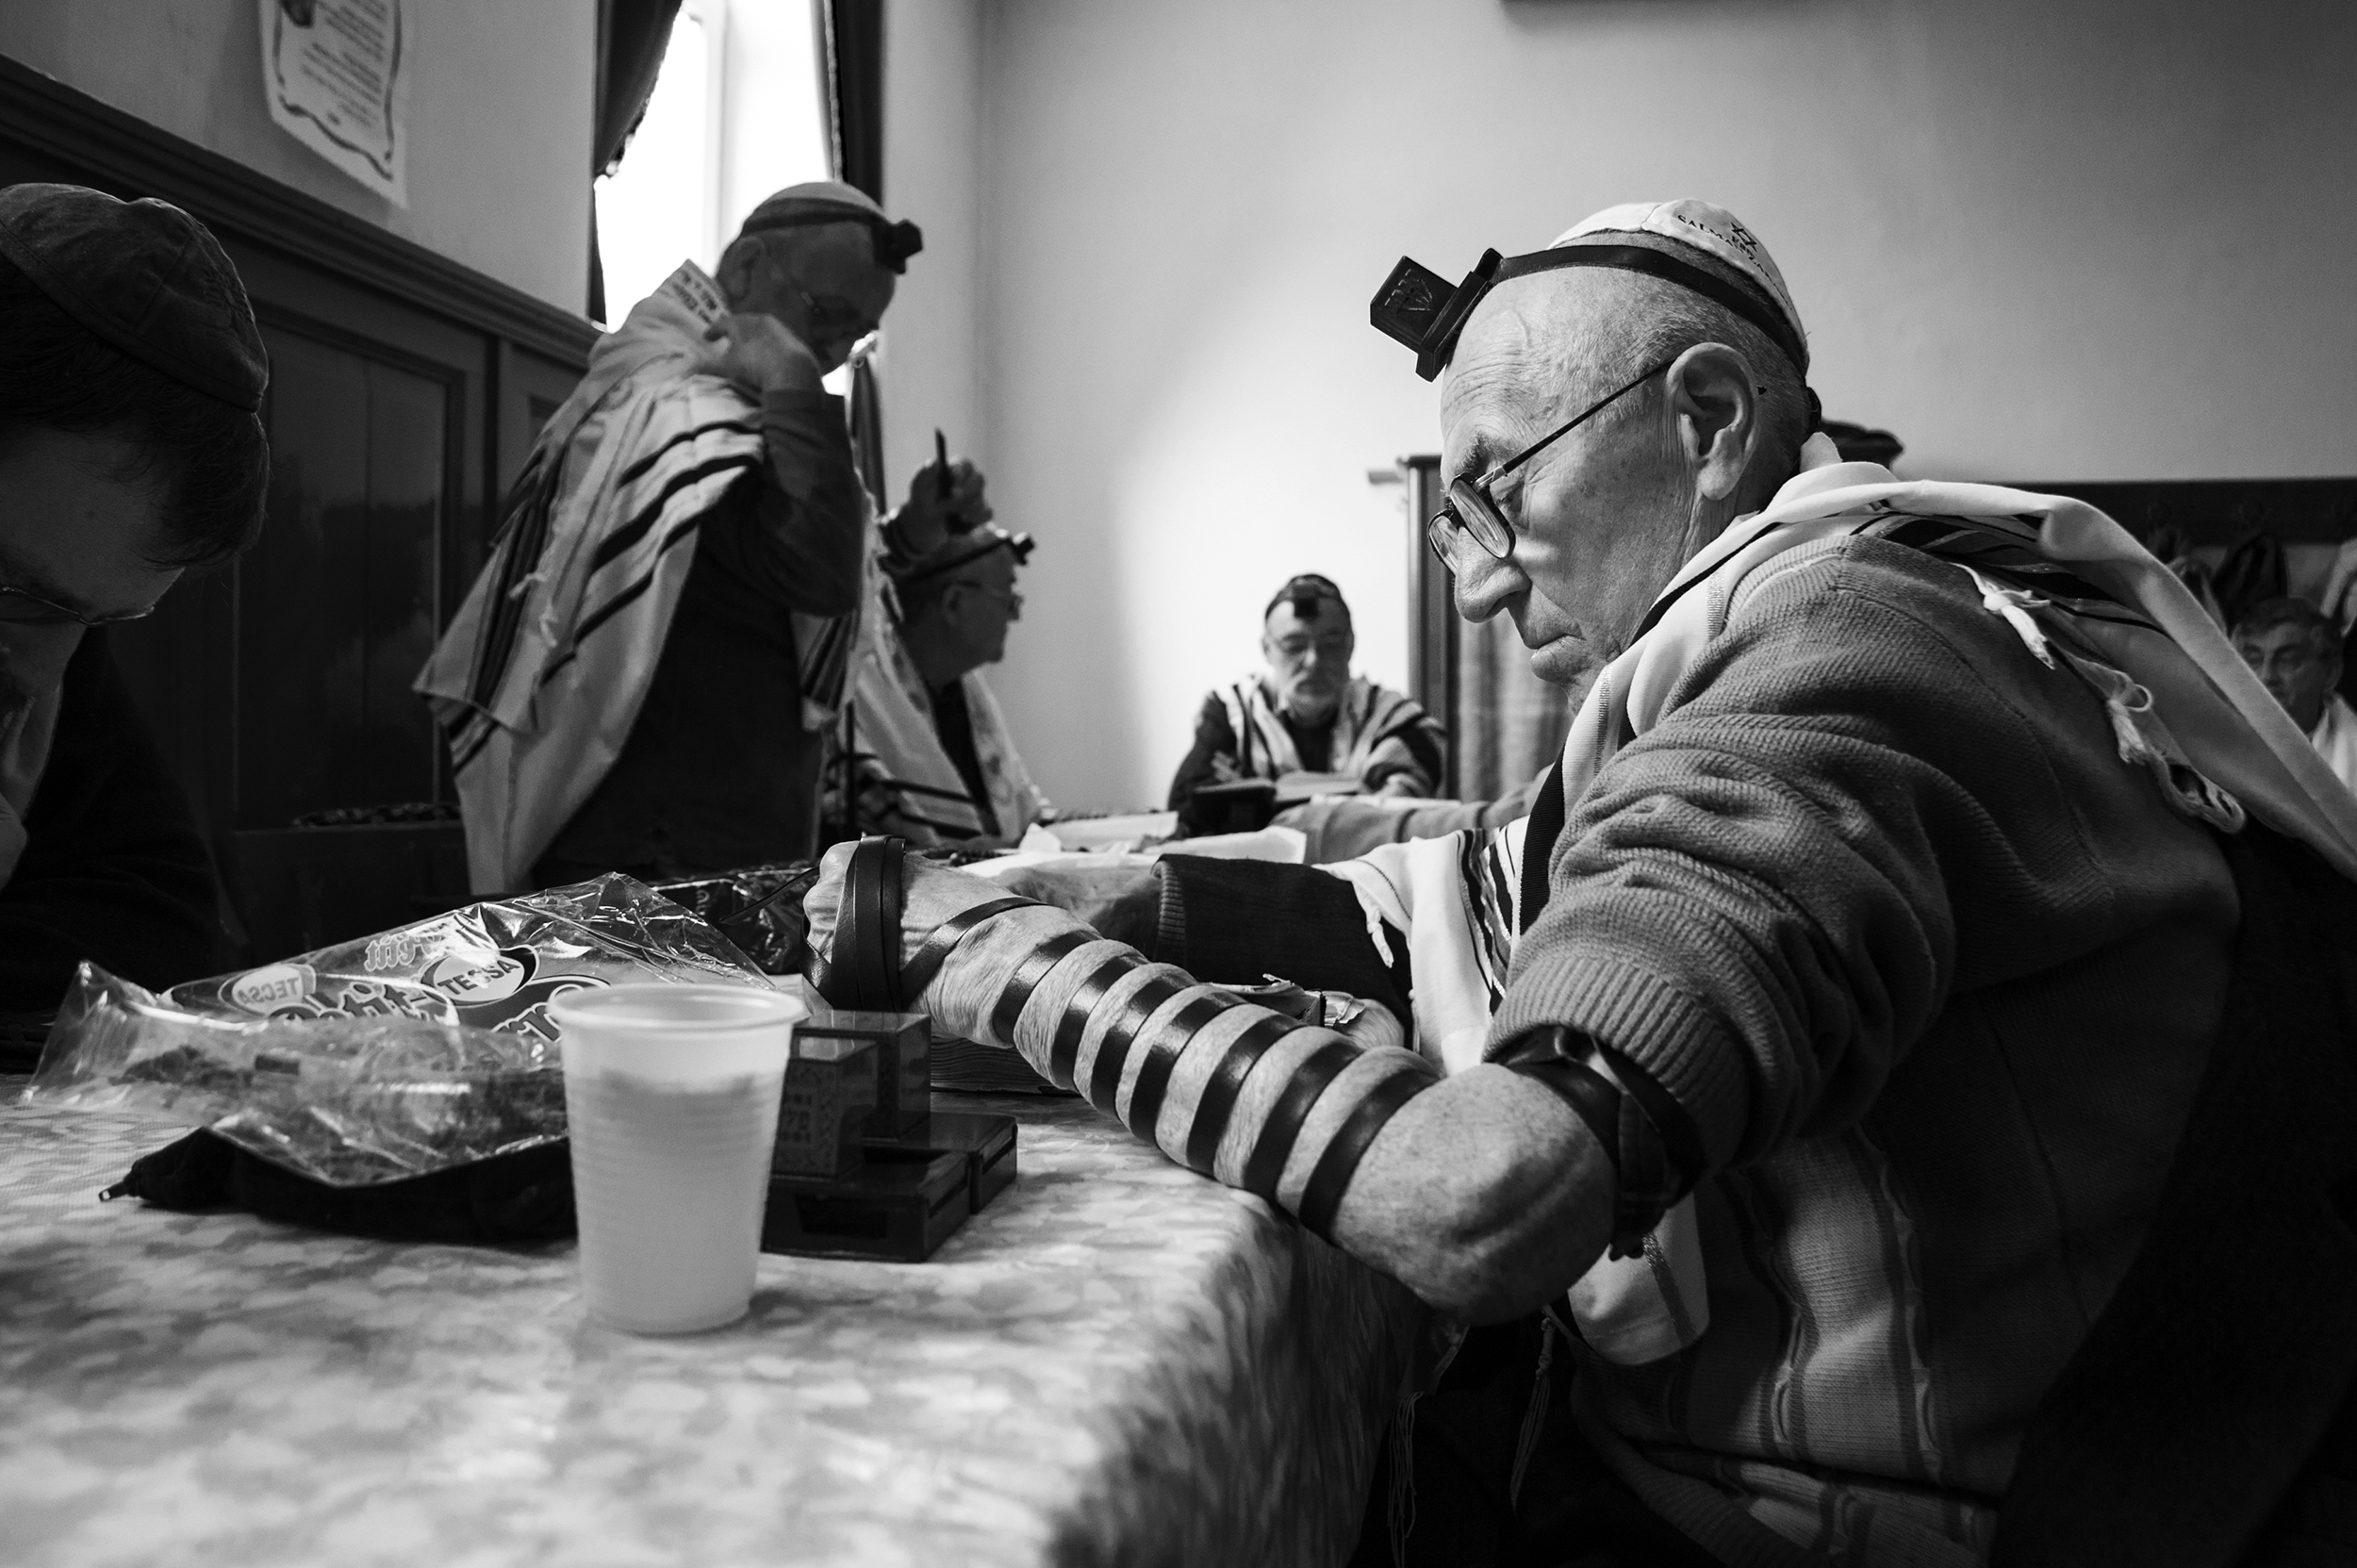 Zakaria Salman studies a religious text with the other members of the minyan in Oradea's only remaining active Sas Chevra Synagogue on April 11, 2013.